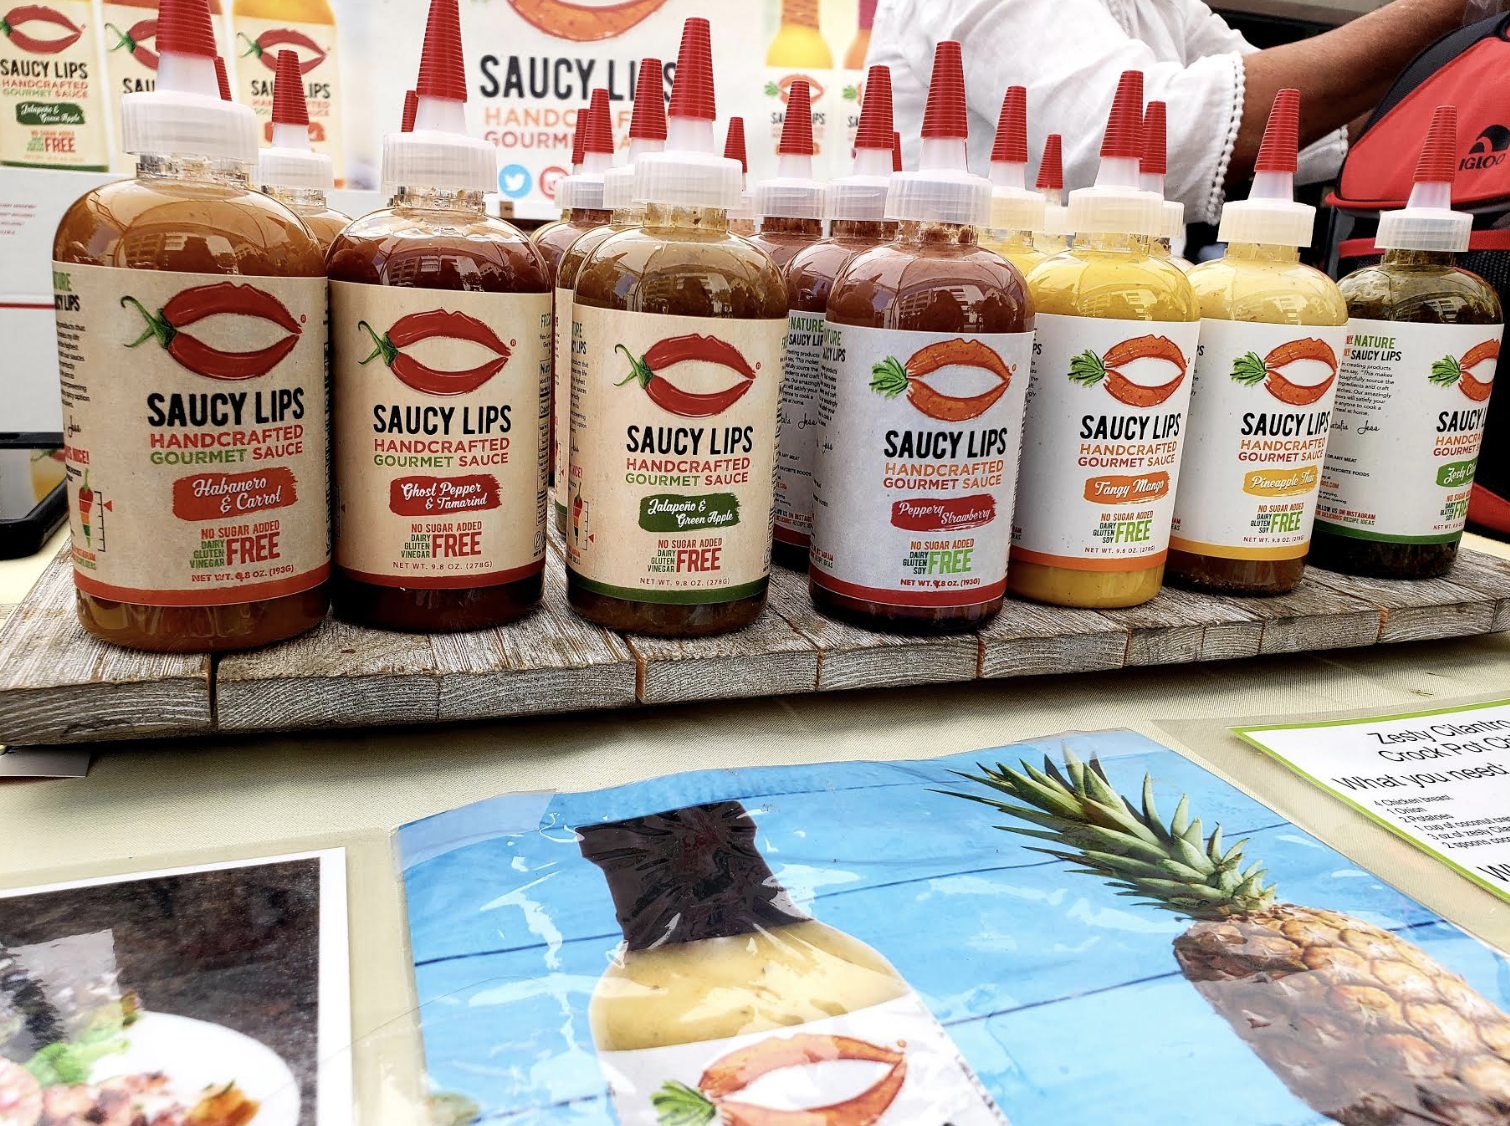 Saucy Lips Was Pretty Addicting! It Serves As a Great Marinade or Topping to Your Favorite Foods!